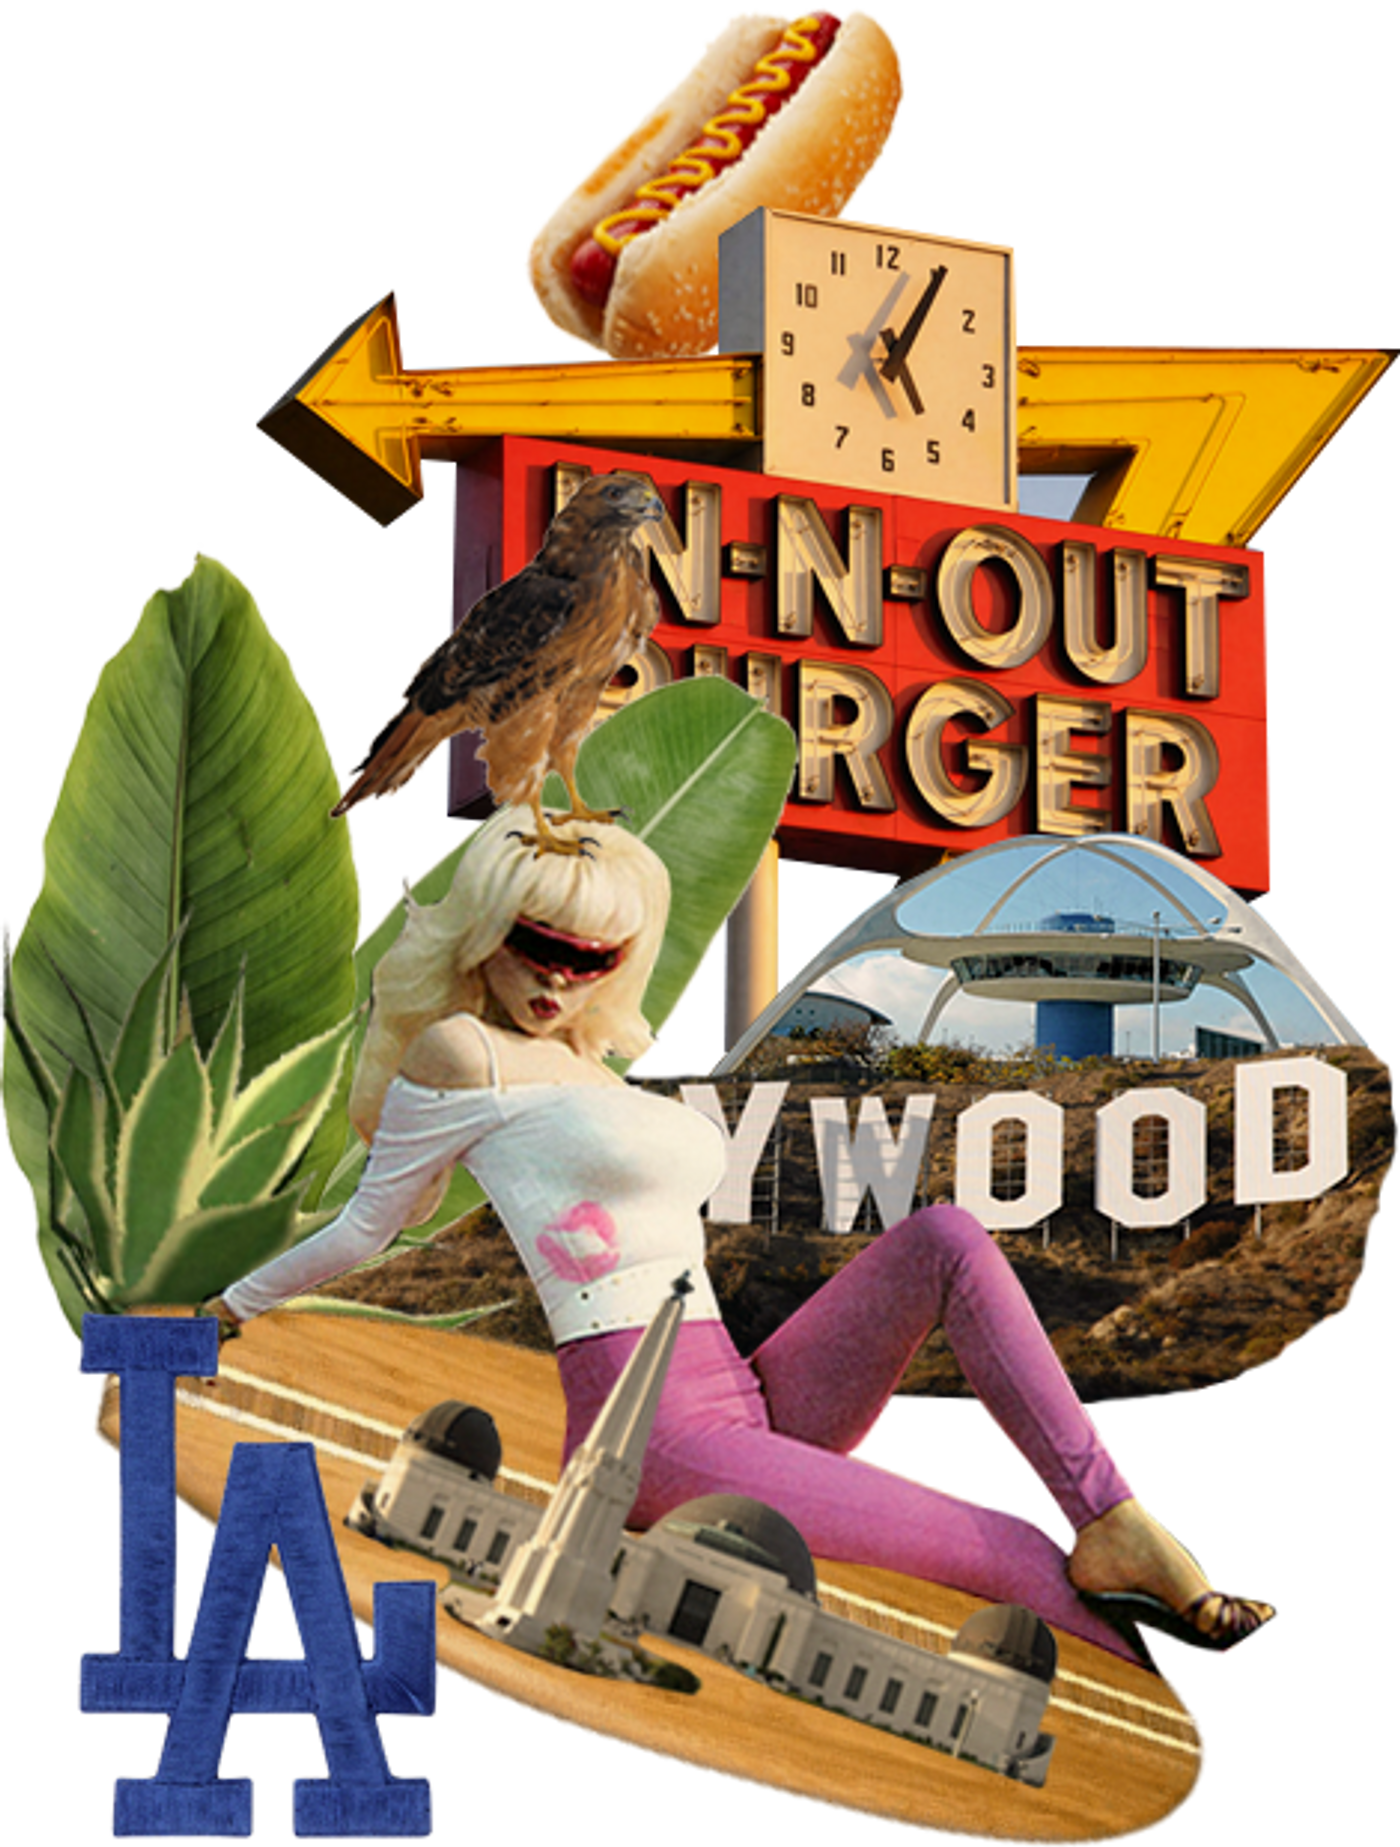 Collage of Los Angeles with surf board and hollywood sign.